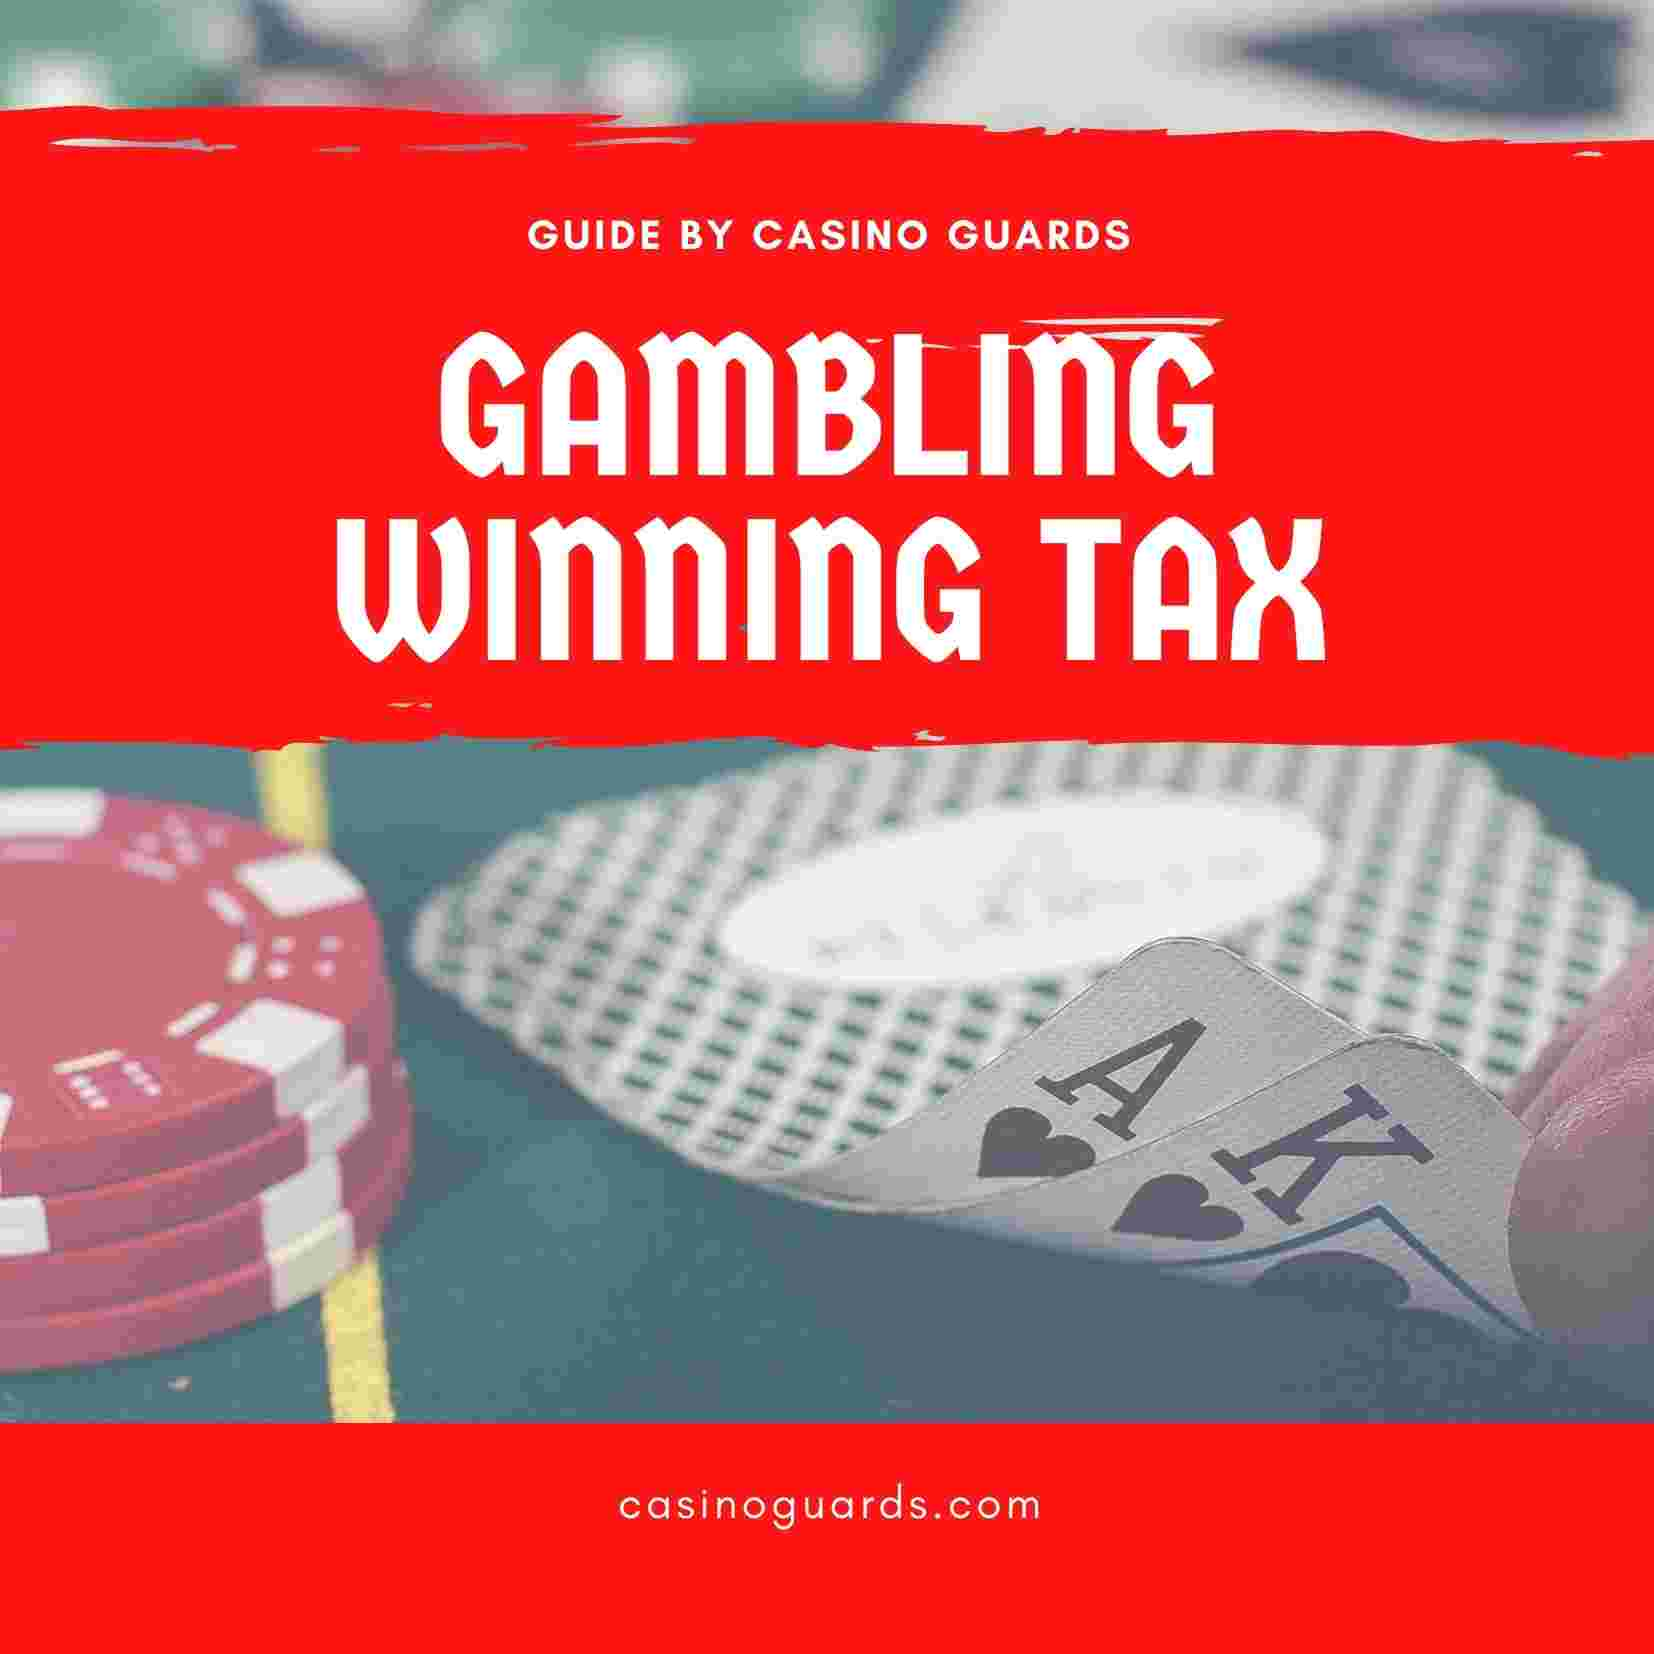 casino winning tax